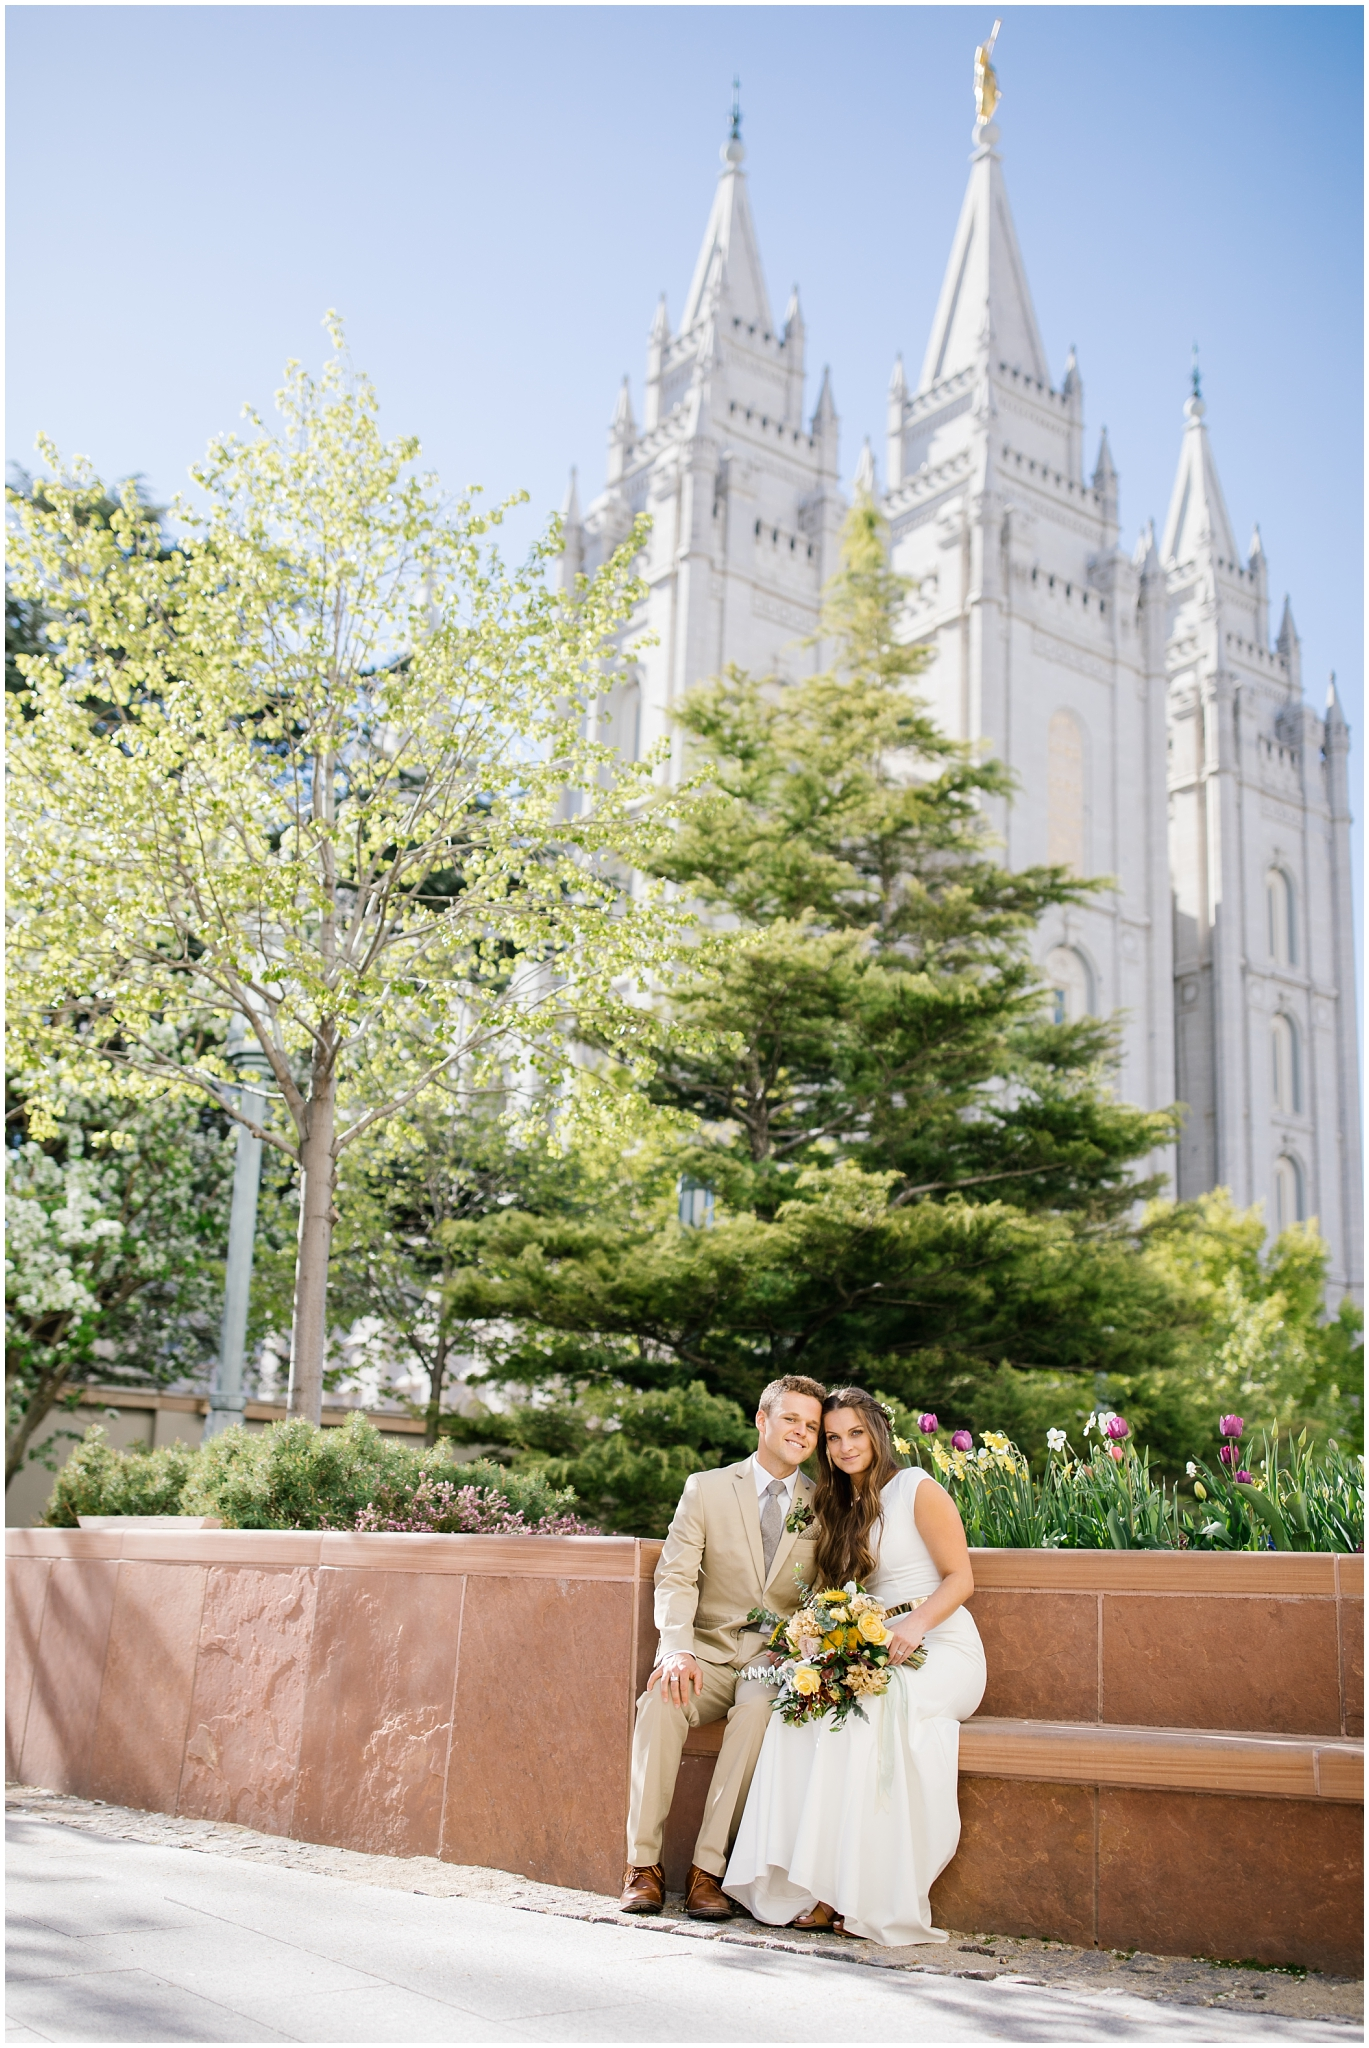 JC-Wedding-199_Lizzie-B-Imagery-Utah-Wedding-Photographer-Park-City-Salt-Lake-City-Temple-Joseph-Smith-Memorial-Building-Empire-Room.jpg